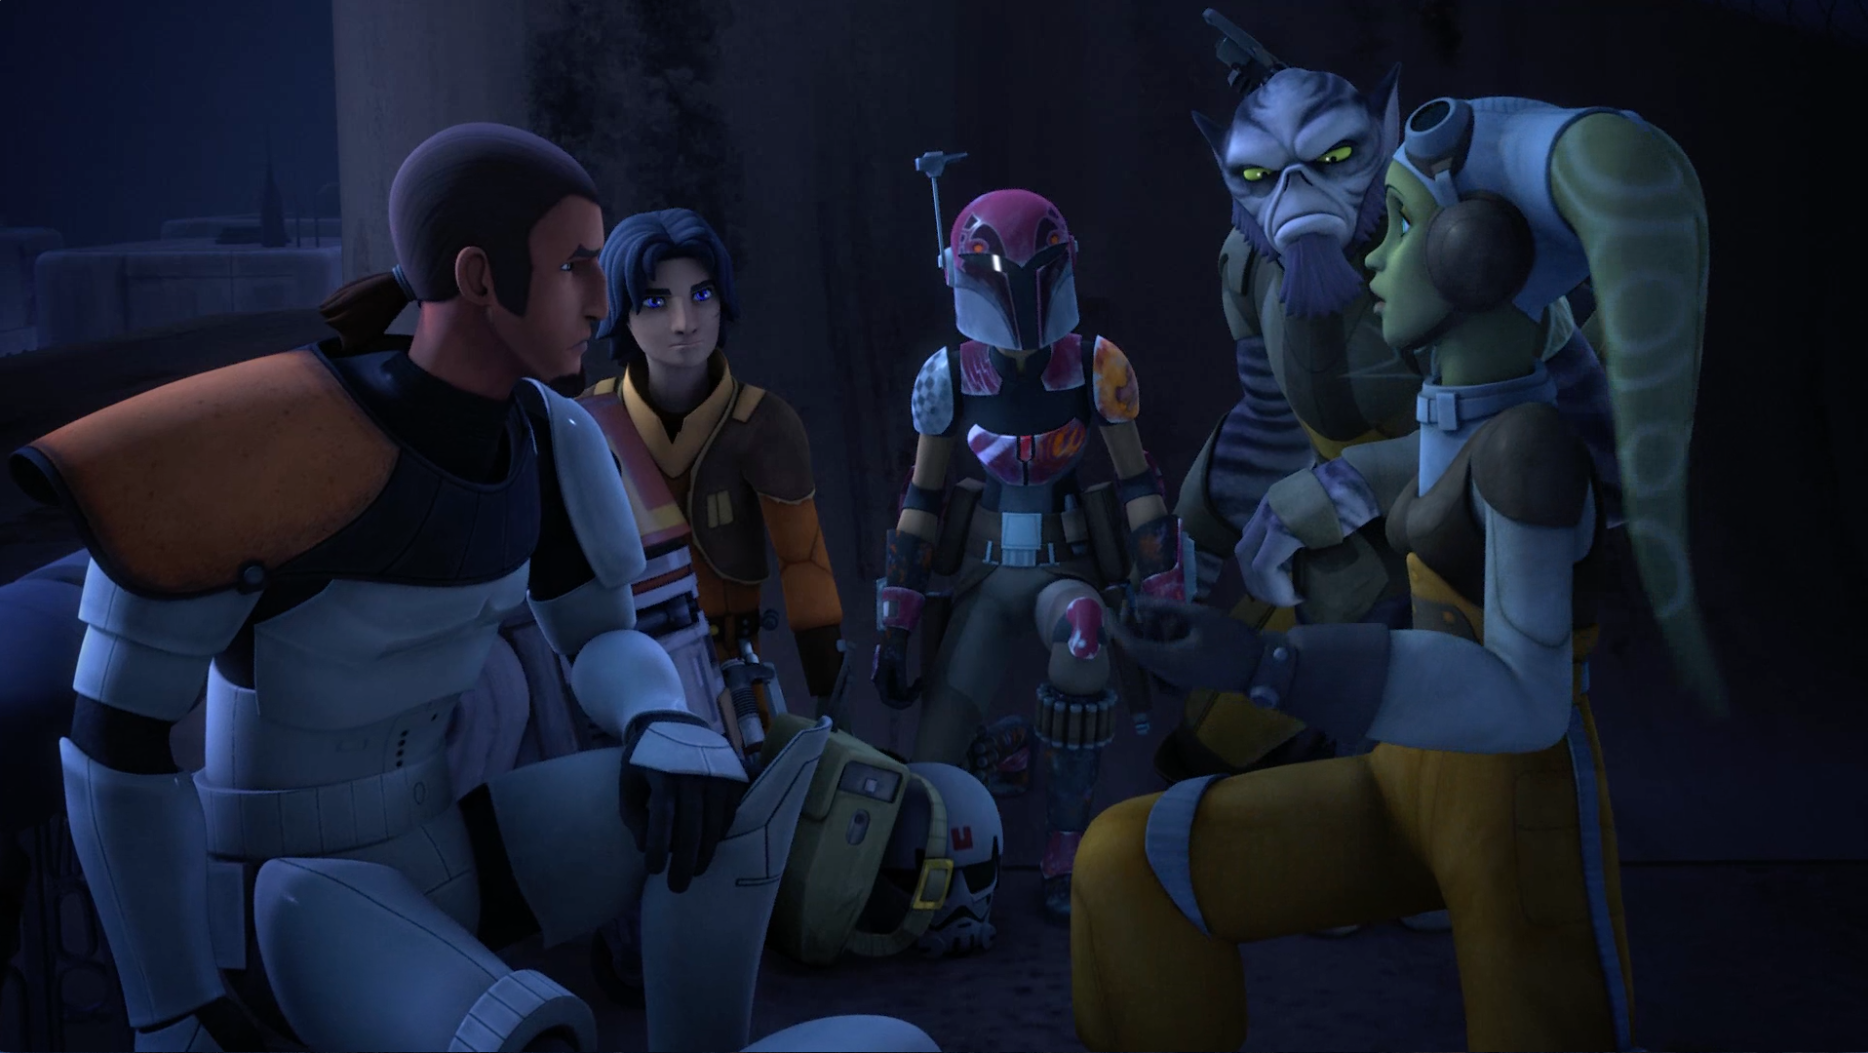 Star Wars Rebels - Estado de sitio en Lothal